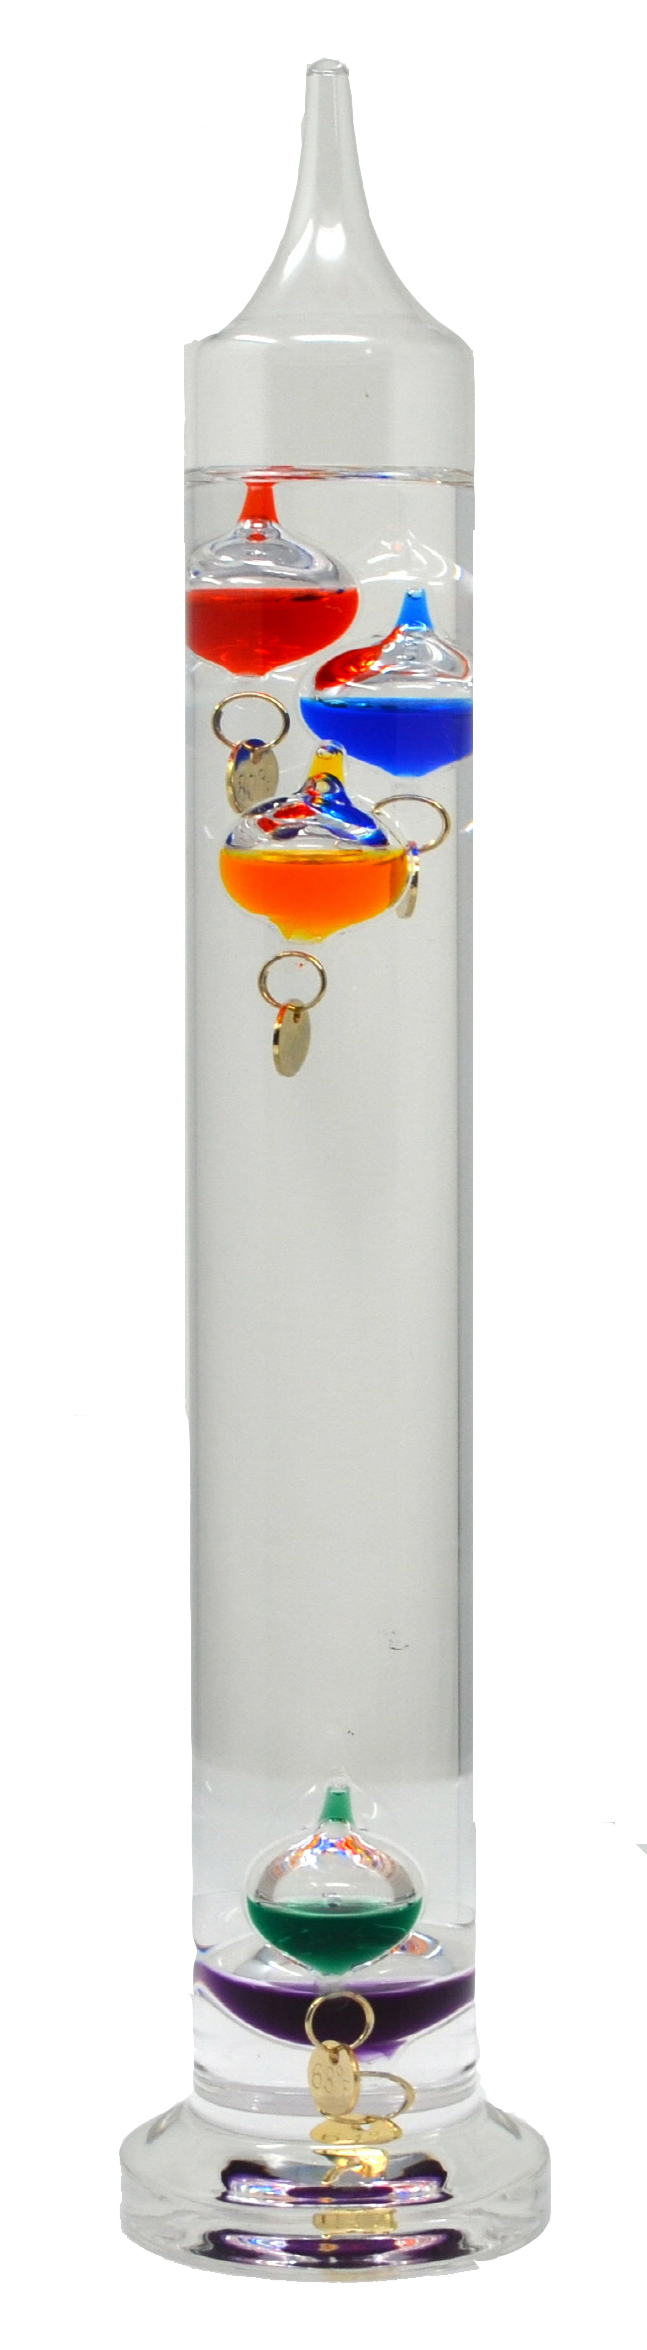 Galileo Thermometer 11 inches (28 cm)